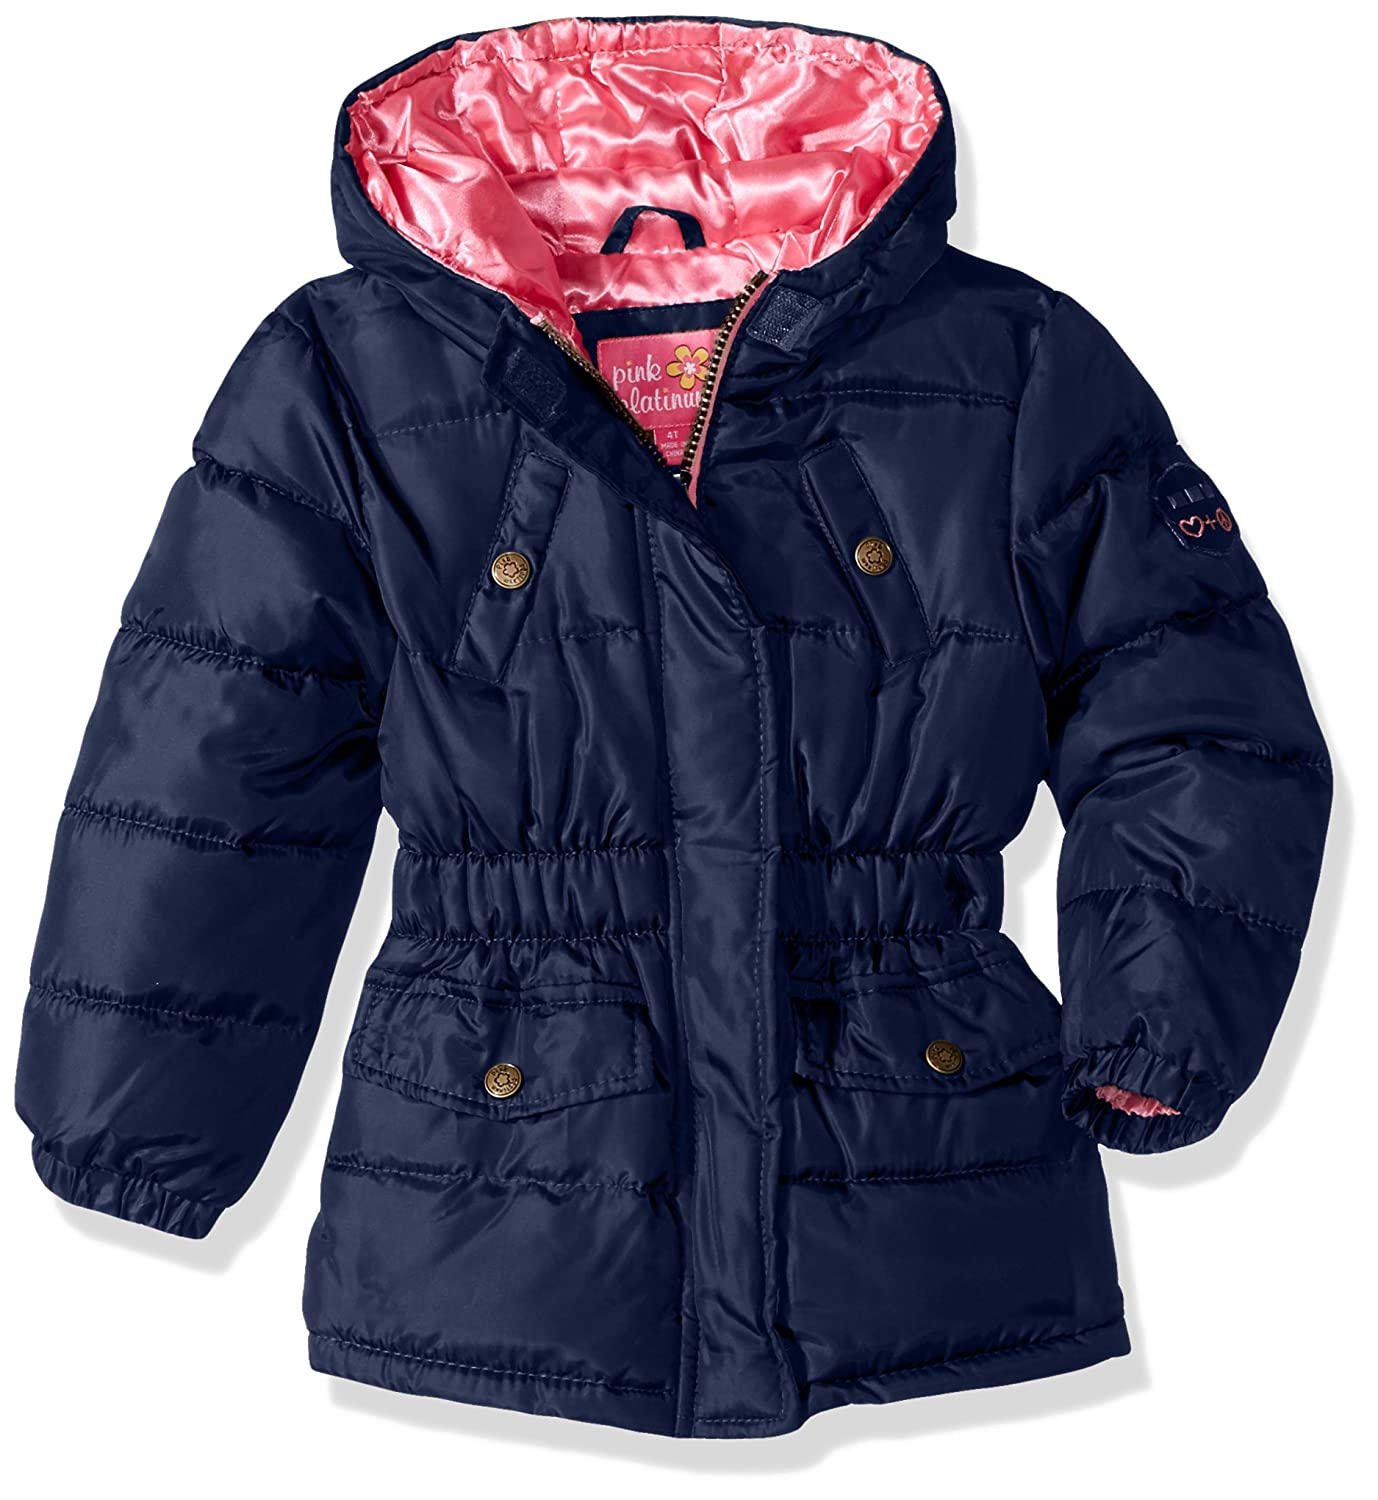 Pink Platinum girls Pop Anorak Jacket 94506